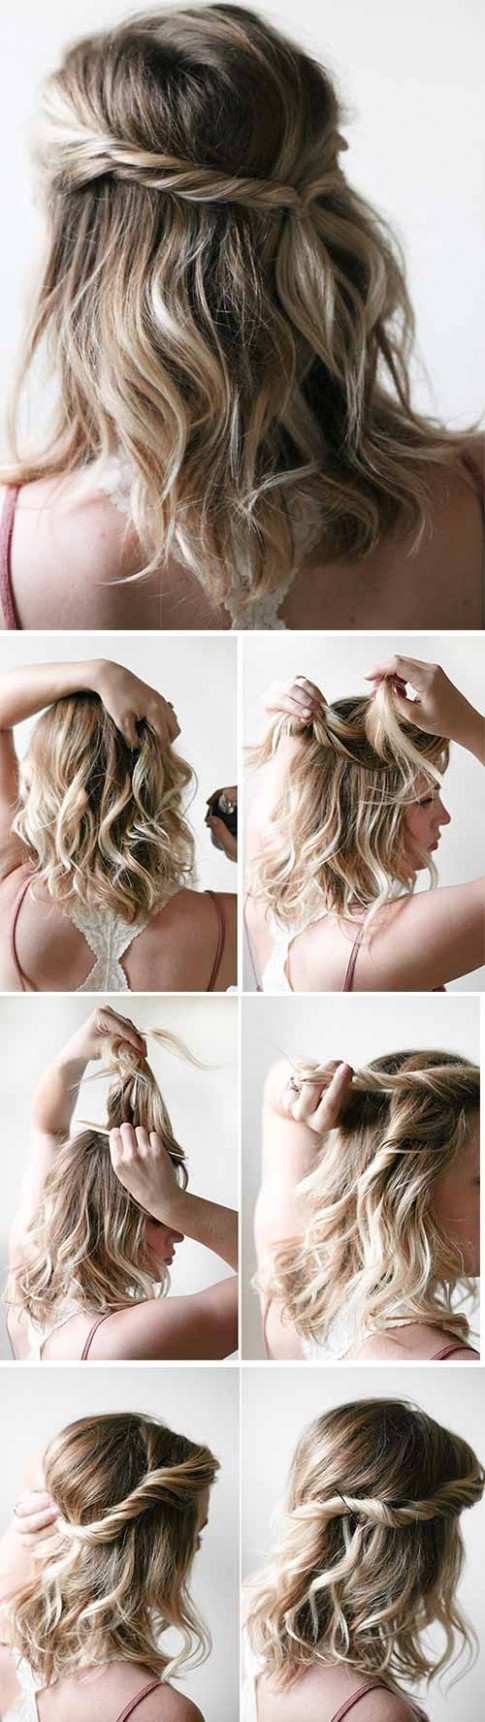 9 Incredible DIY Short Hairstyles A Step By Step Guide Easy Hairstyles For Short Hair